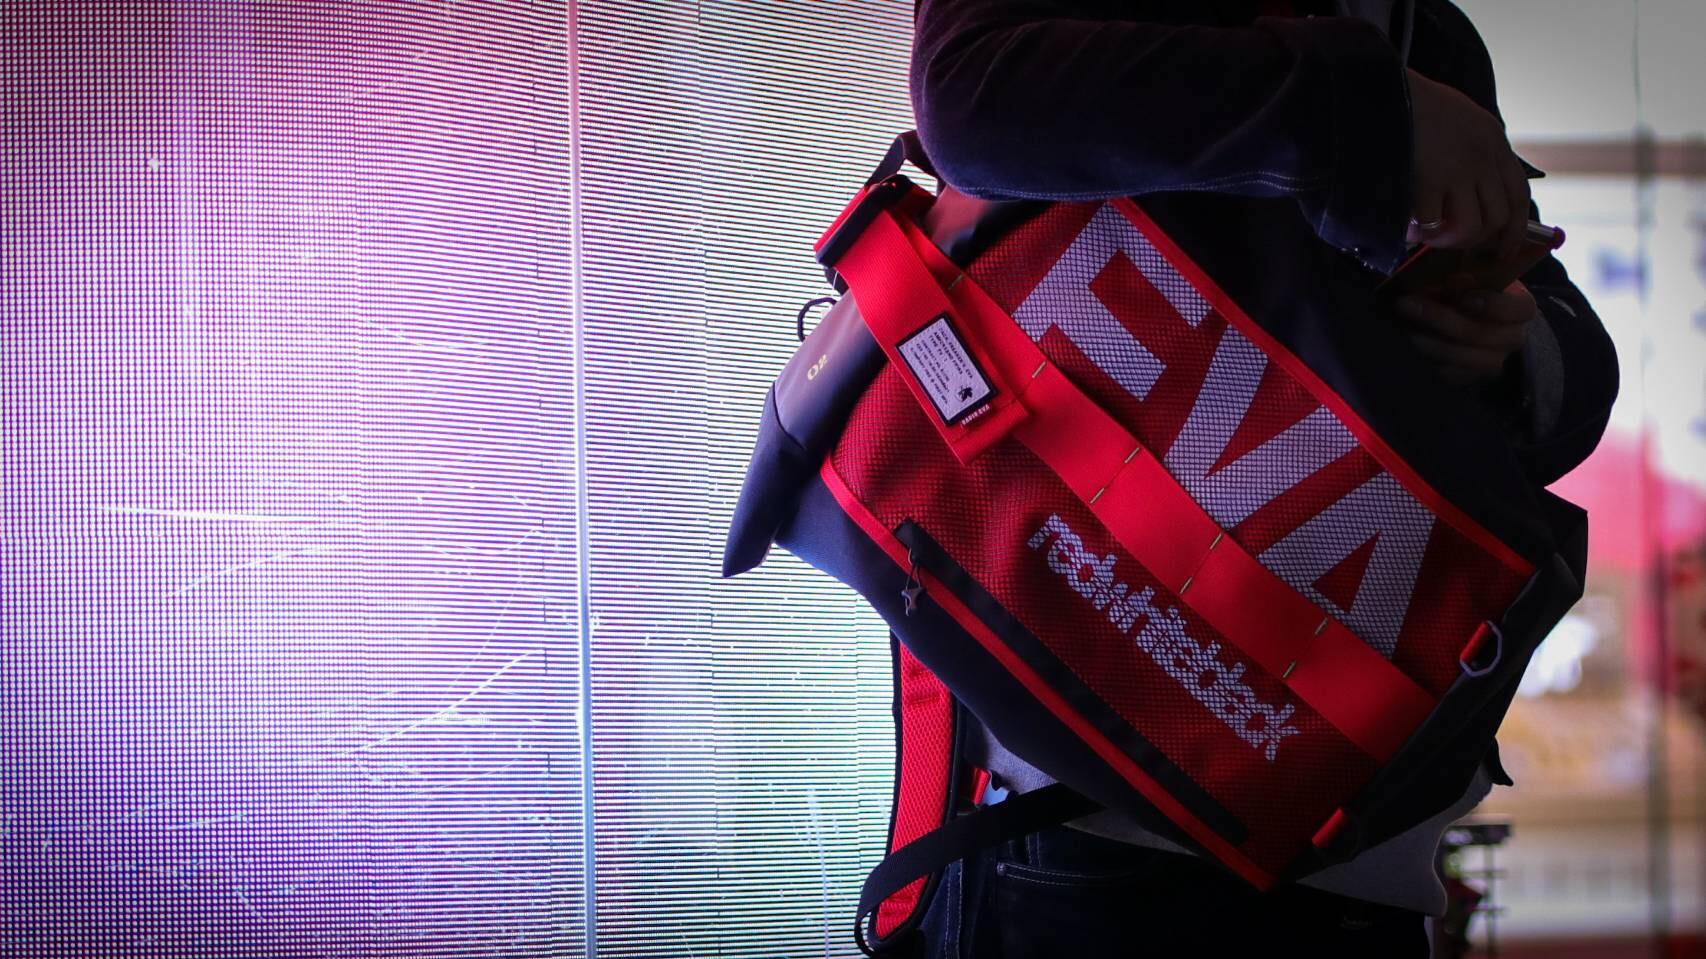 EVANGELION ROLL BACK PACK by FIRE FIRST (EVA-00 MDOEL)